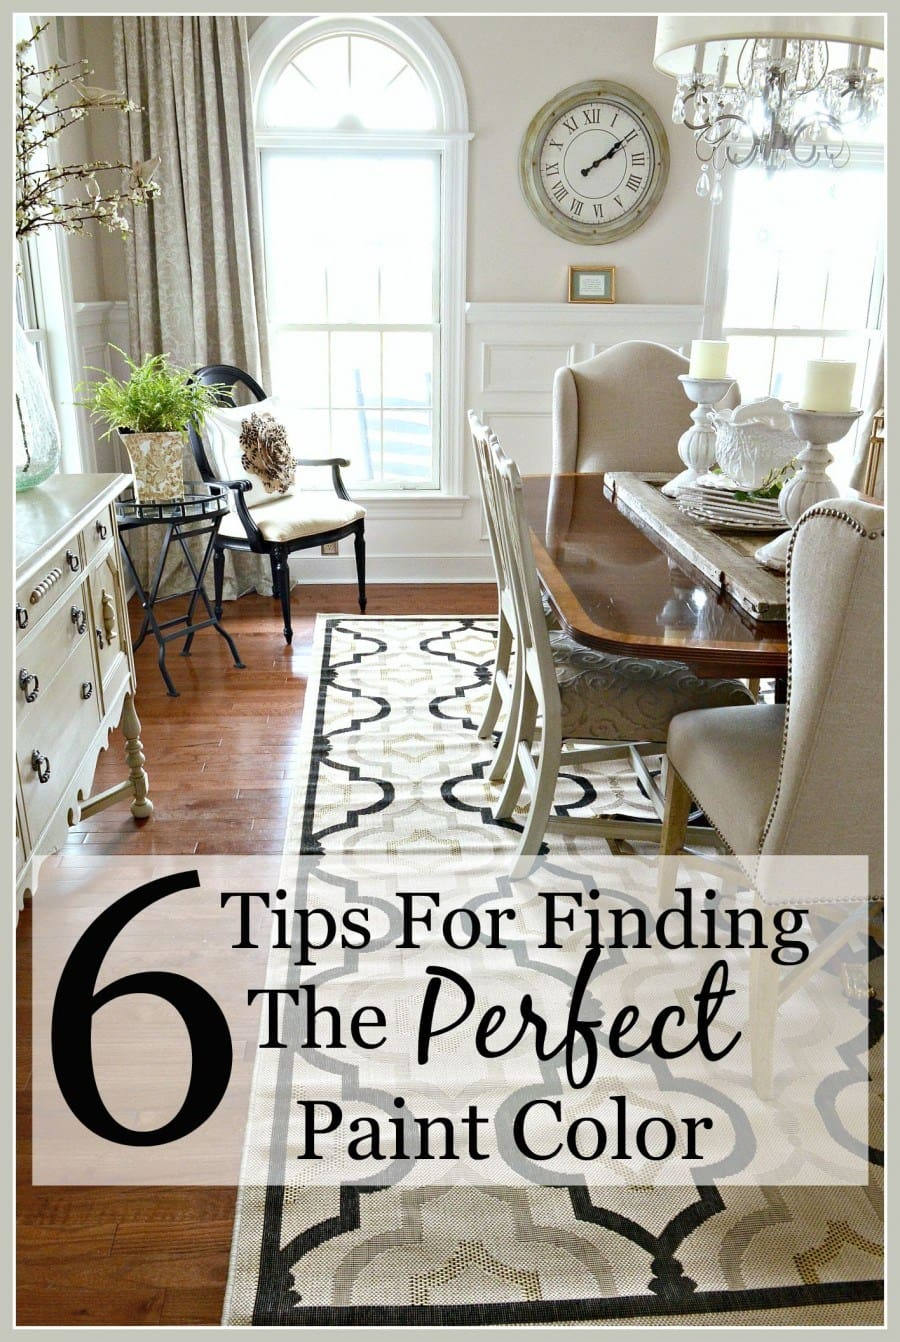 StoneGable | 6 Tips for Finding the Perfect Paint Color